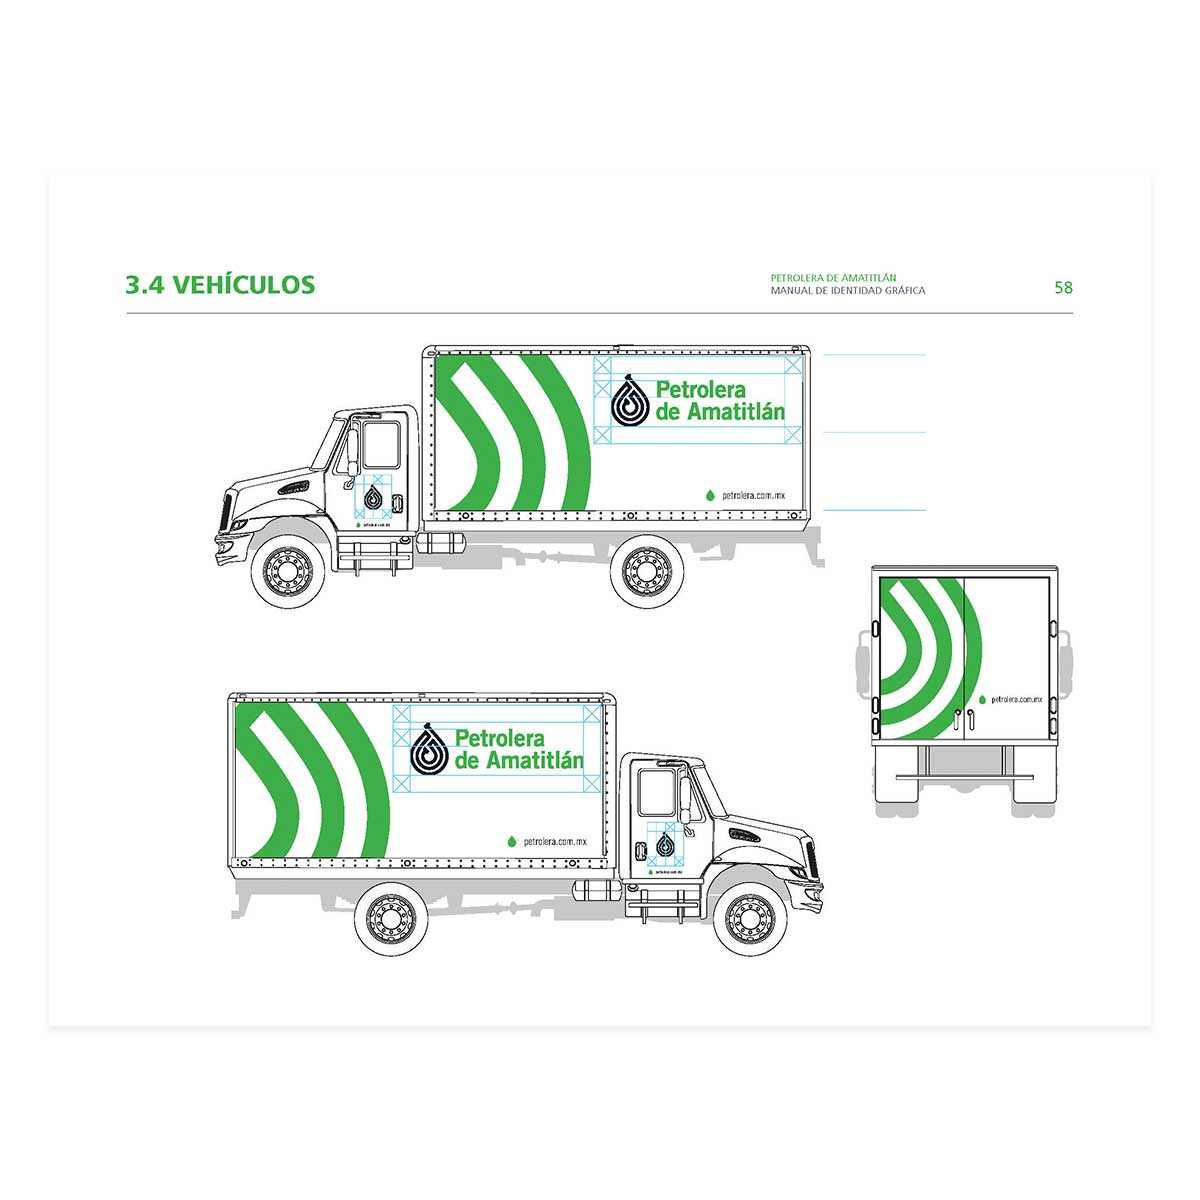 Truck designs in brand guidelines